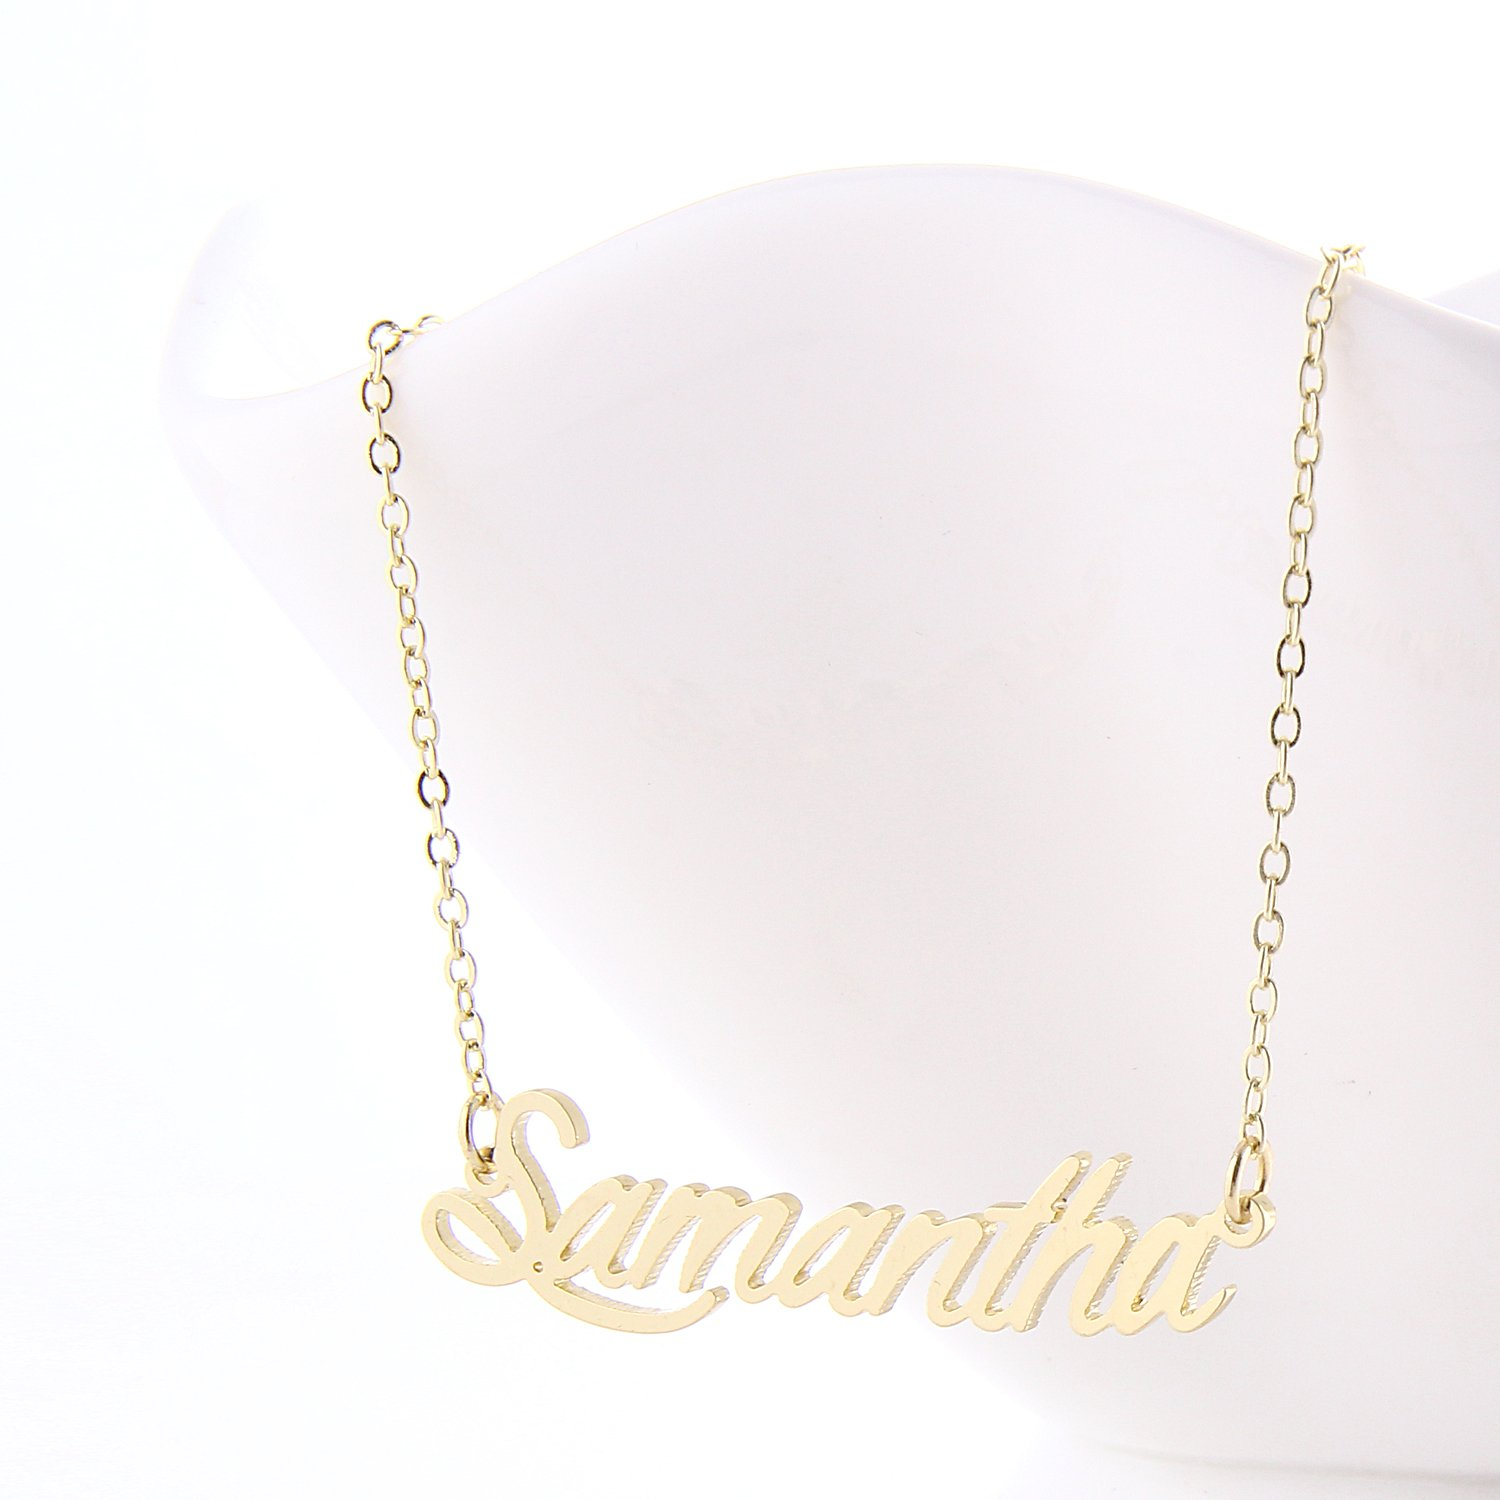 v roll gold p necklace drag zoom in plate cursive silver sterling to over with larger name image